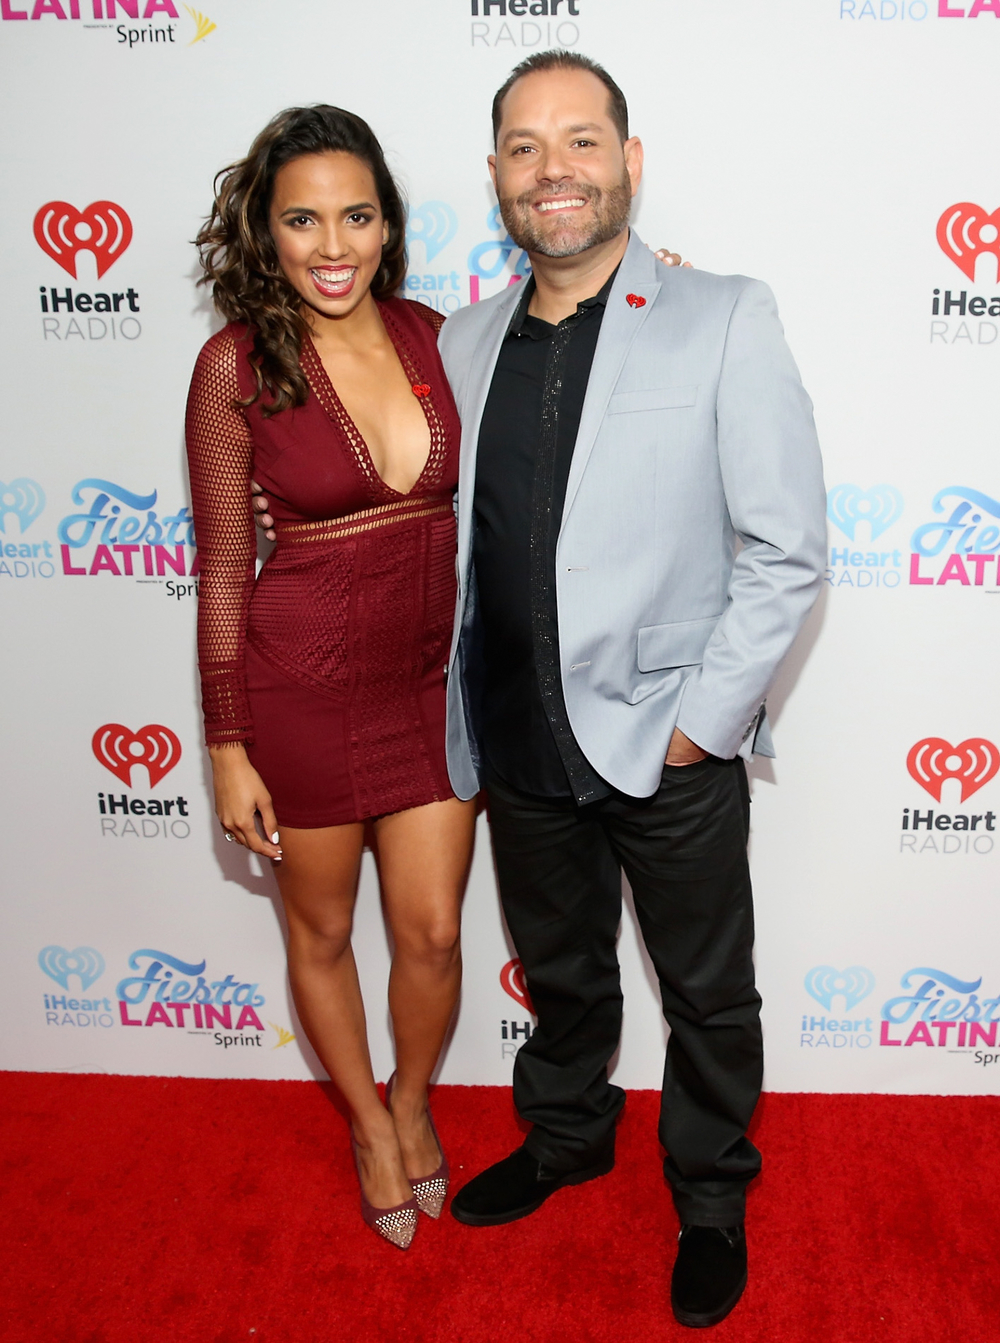 MIAMI, FL - NOVEMBER 07:  Radio personalities Melissa Rodriguez and Joe Ferrero attend iHeartRadio Fiesta Latina presented by Sprint at American Airlines Arena on November 7, 2015 in Miami, Florida.  (Photo by Aaron Davidson/Getty Images for iHeartMedia) *** Local Caption *** Melissa Rodriguez;Joe Ferrero